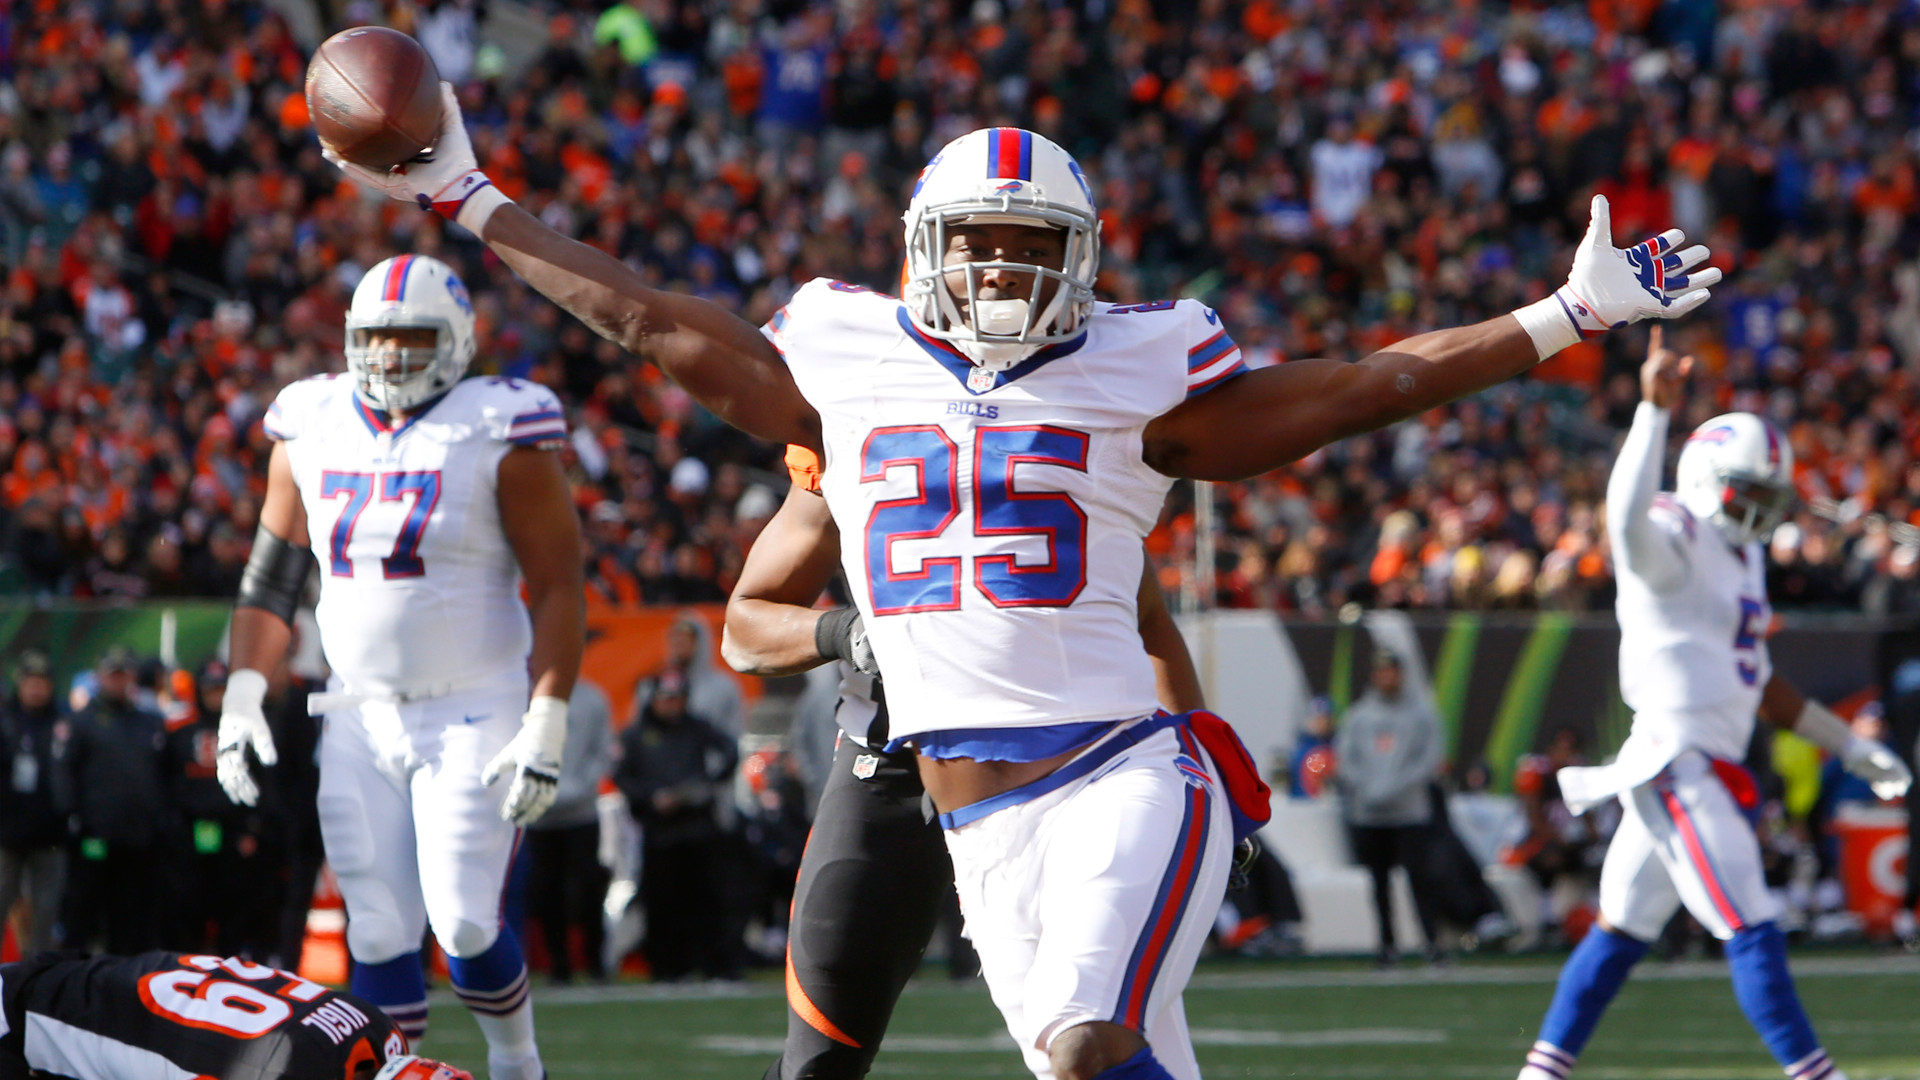 McCoy, Bills run game to 'throw the gauntlet' at Raiders defensive front |  NBCS Bay Area